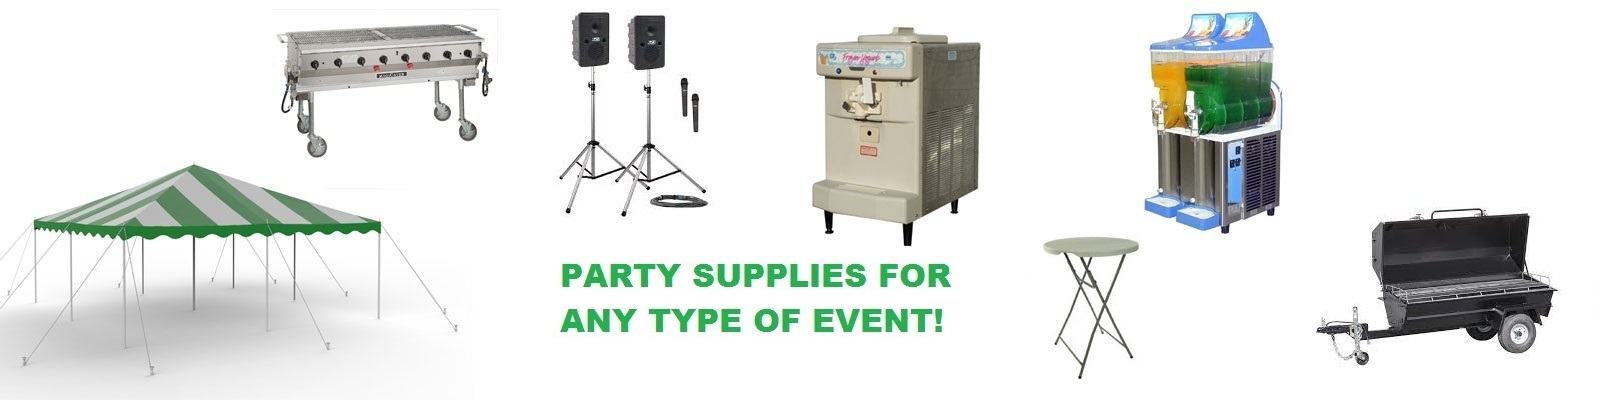 Party rentals in Twin Cities Metro Area